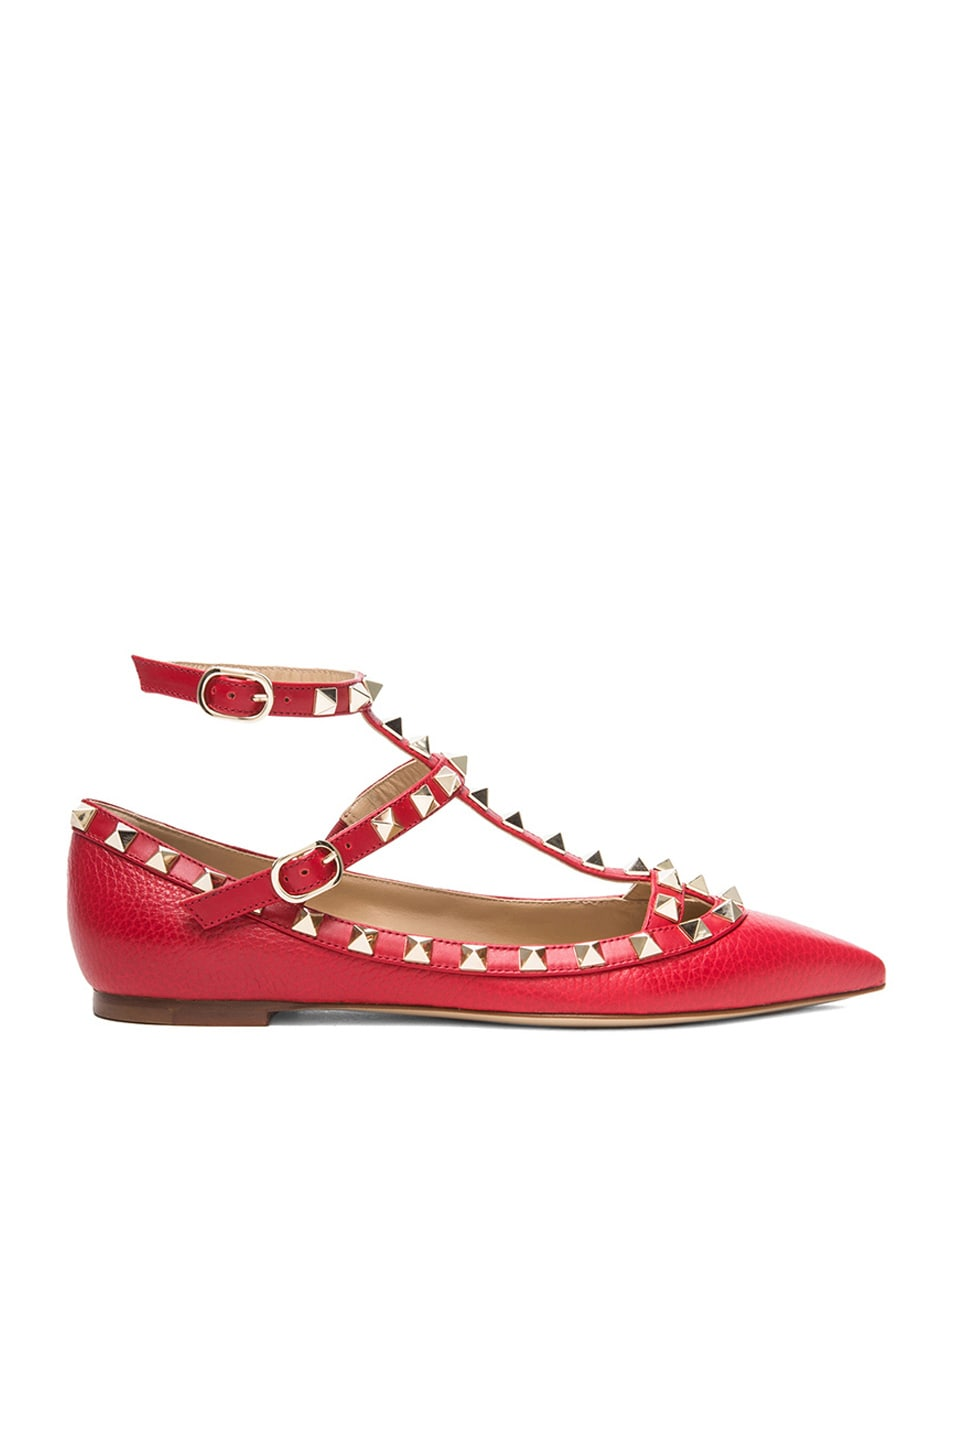 Image 1 of Valentino Rockstud Leather Cage Flats in Rosso